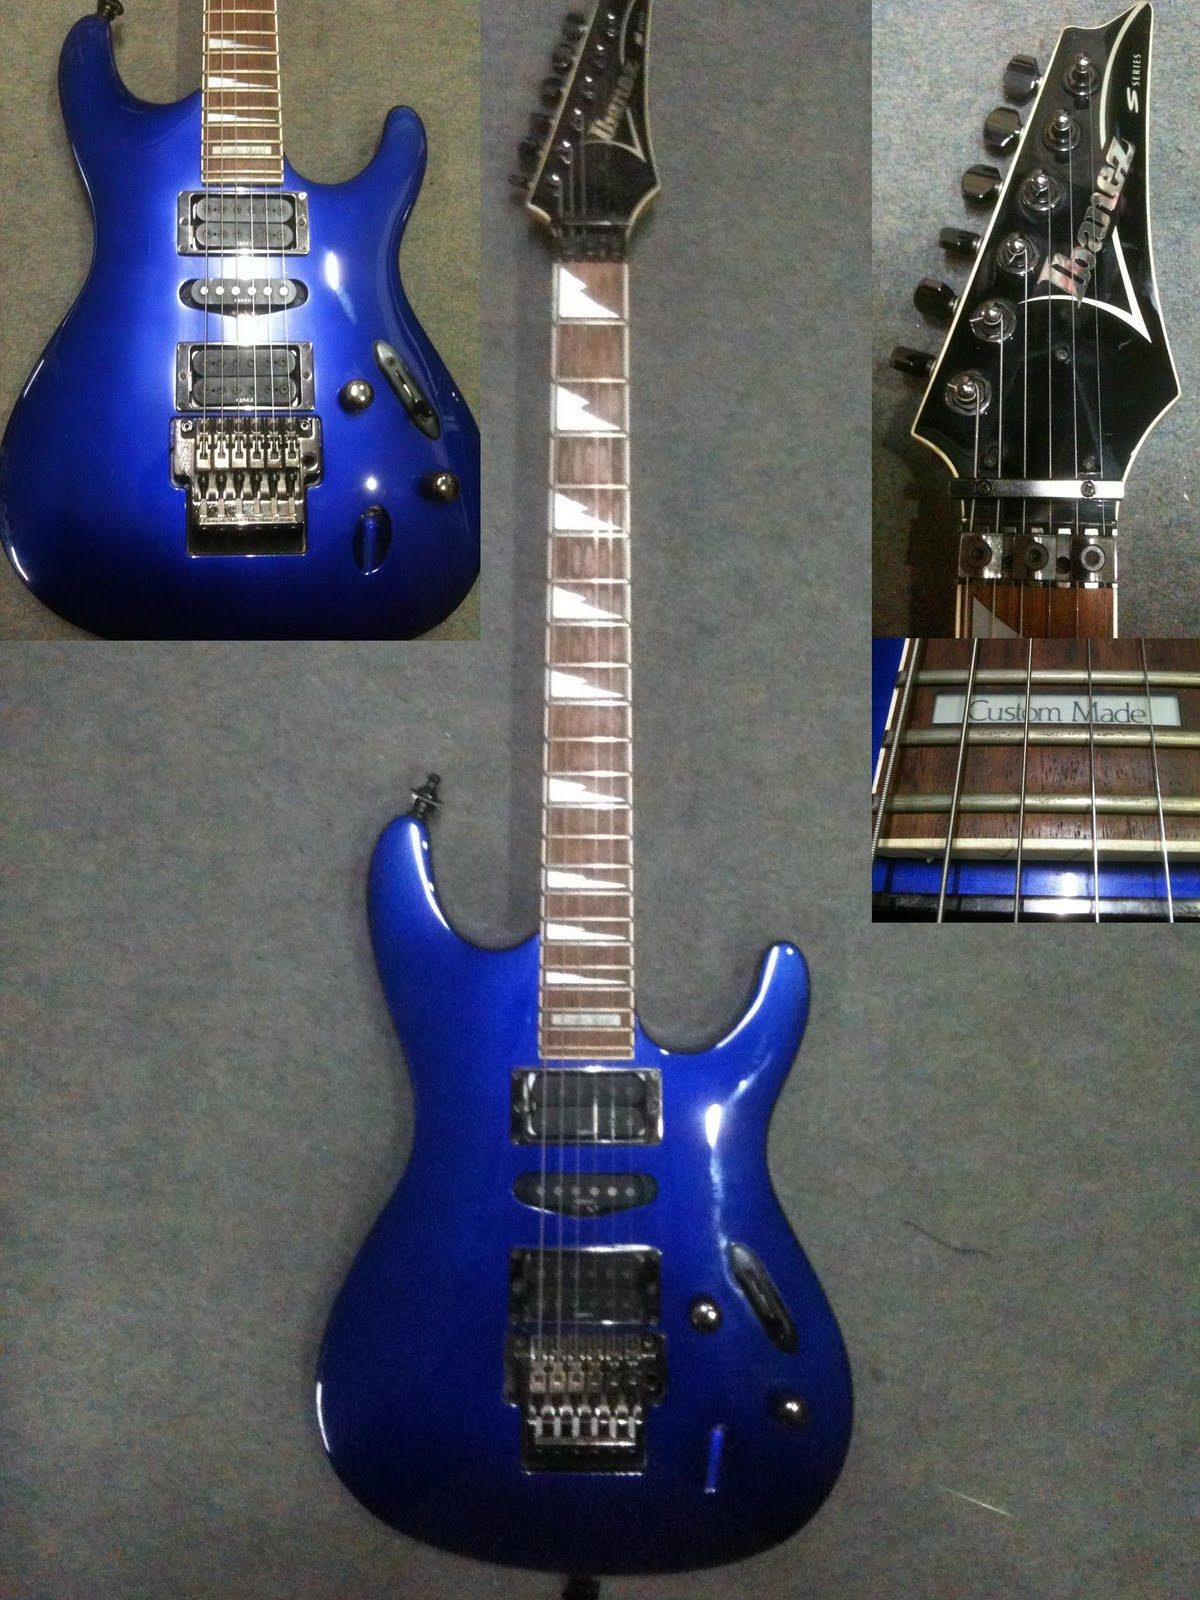 Dorable Ibanez Rg760 Blue Ornament - Everything You Need to Know ...